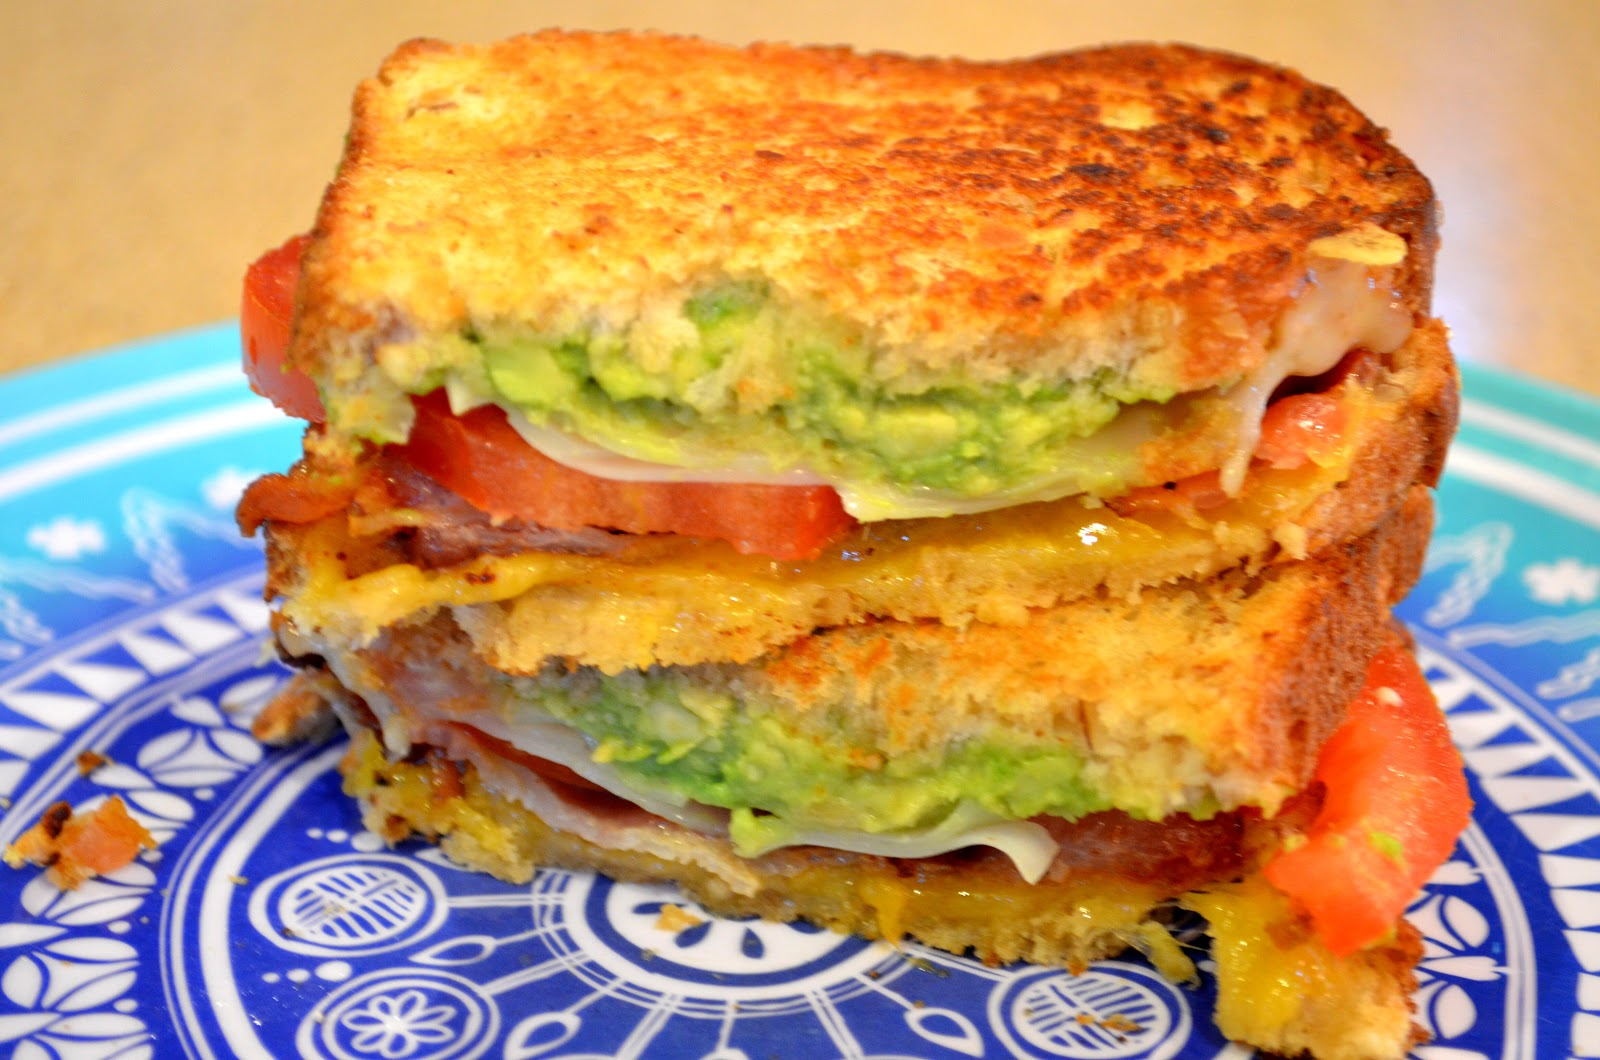 Breaking the recipe rut: California Grilled Cheese Sandwich